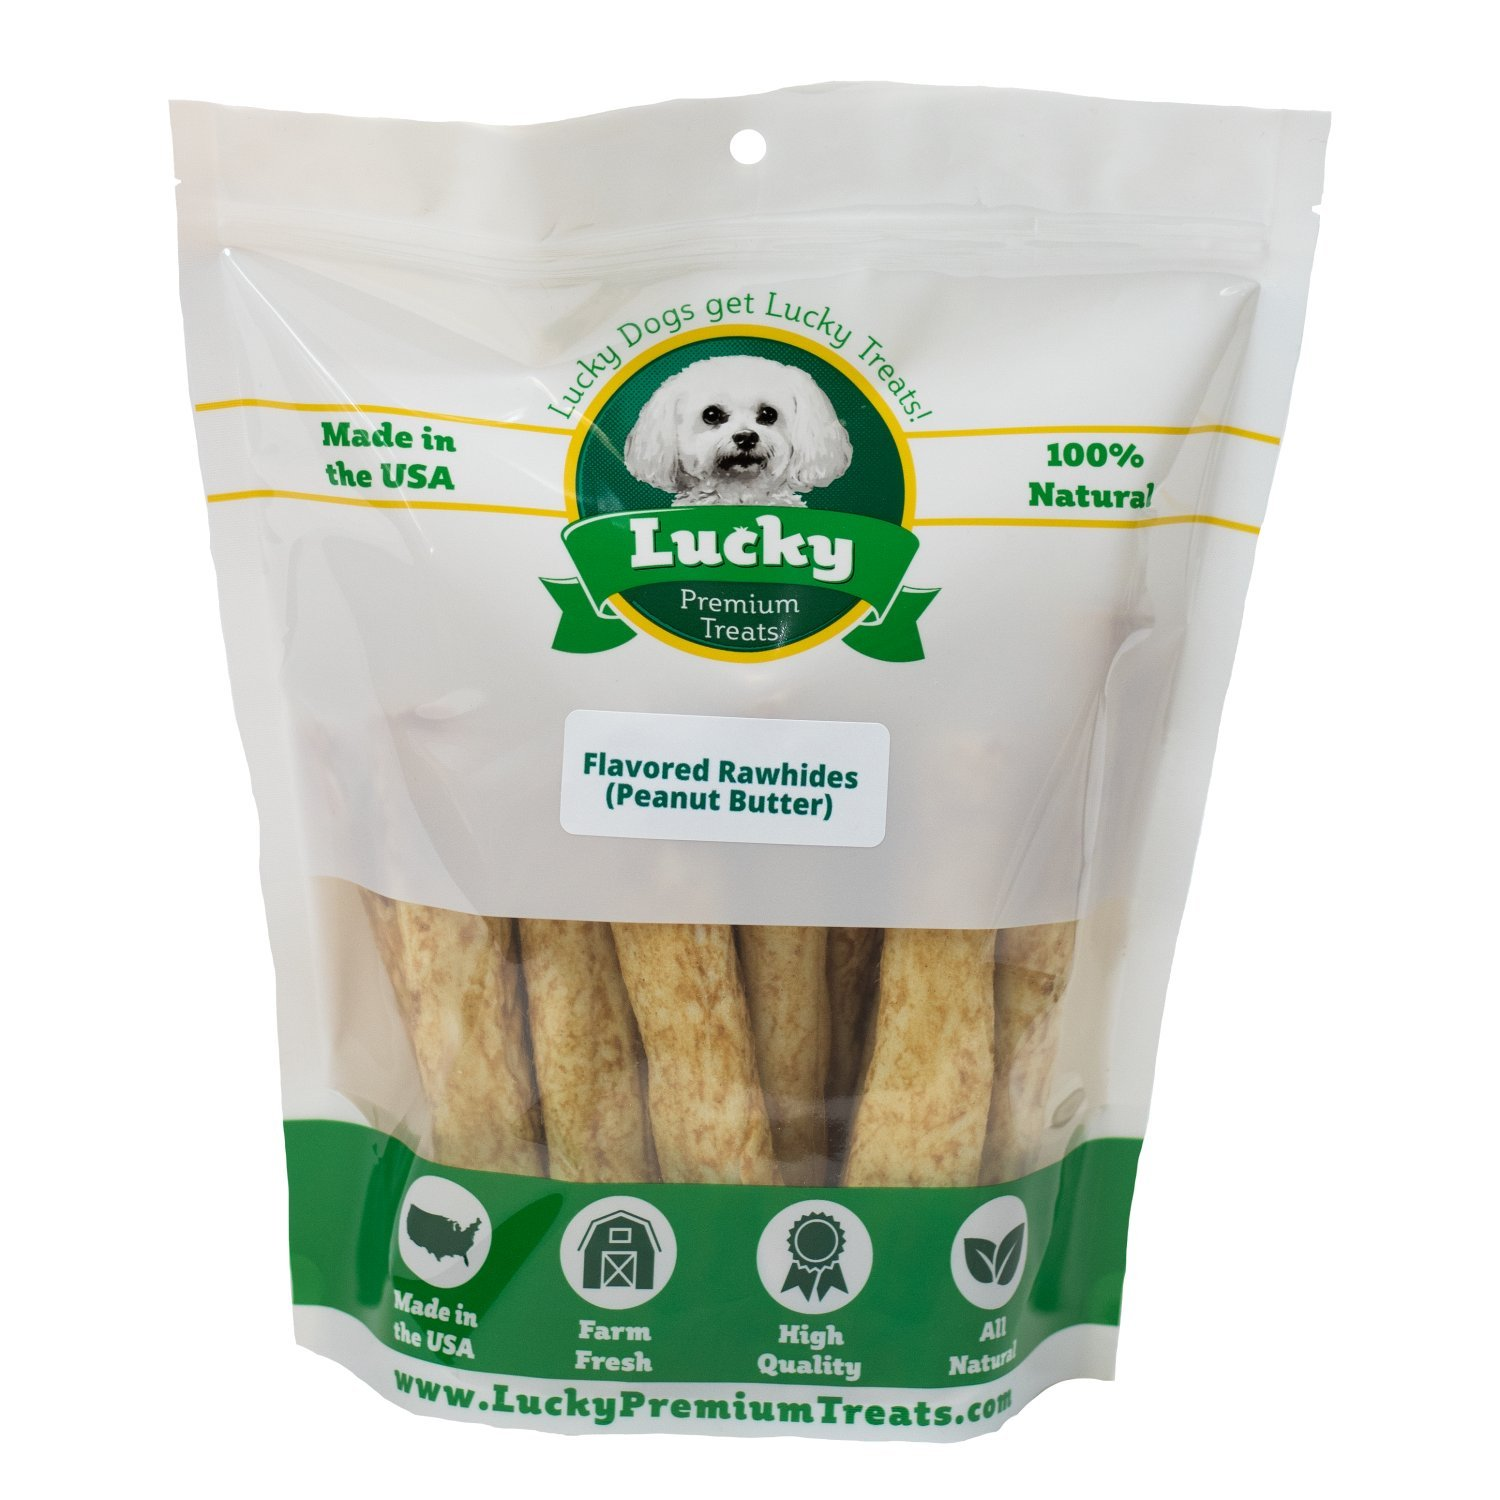 Lucky Premium Treats Peanut Butter Flavored Rawhide Dog Treats for Medium Dogs Made in the USA Only by, 20 Chews